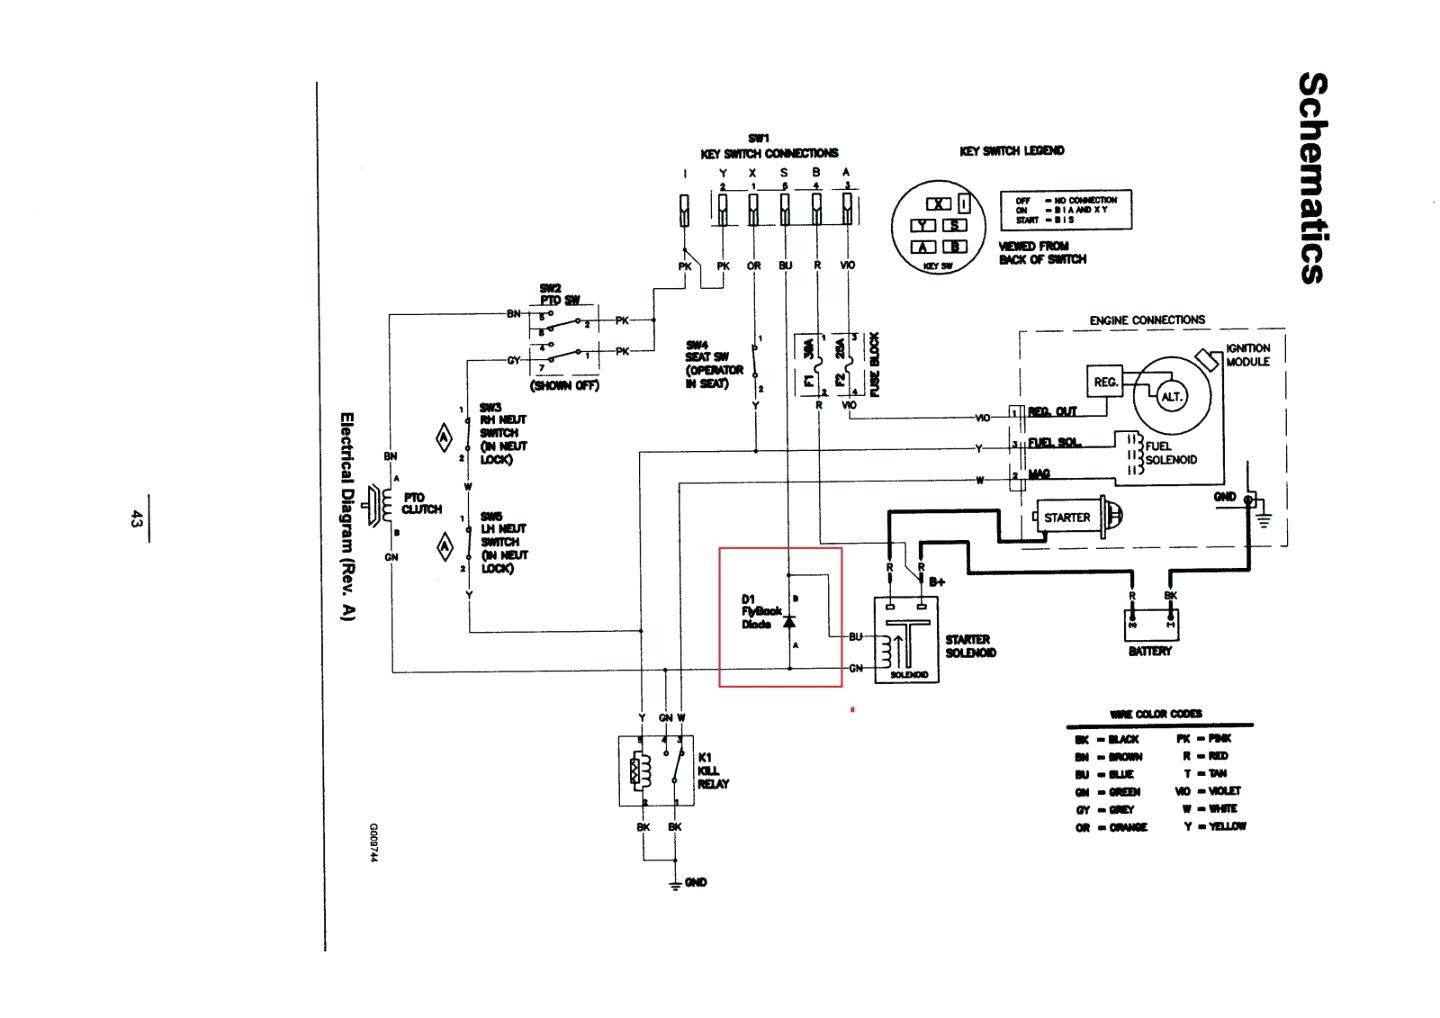 mand wiring diagram new for kohler engine unusual key switch gallery electrical charging harness on archived